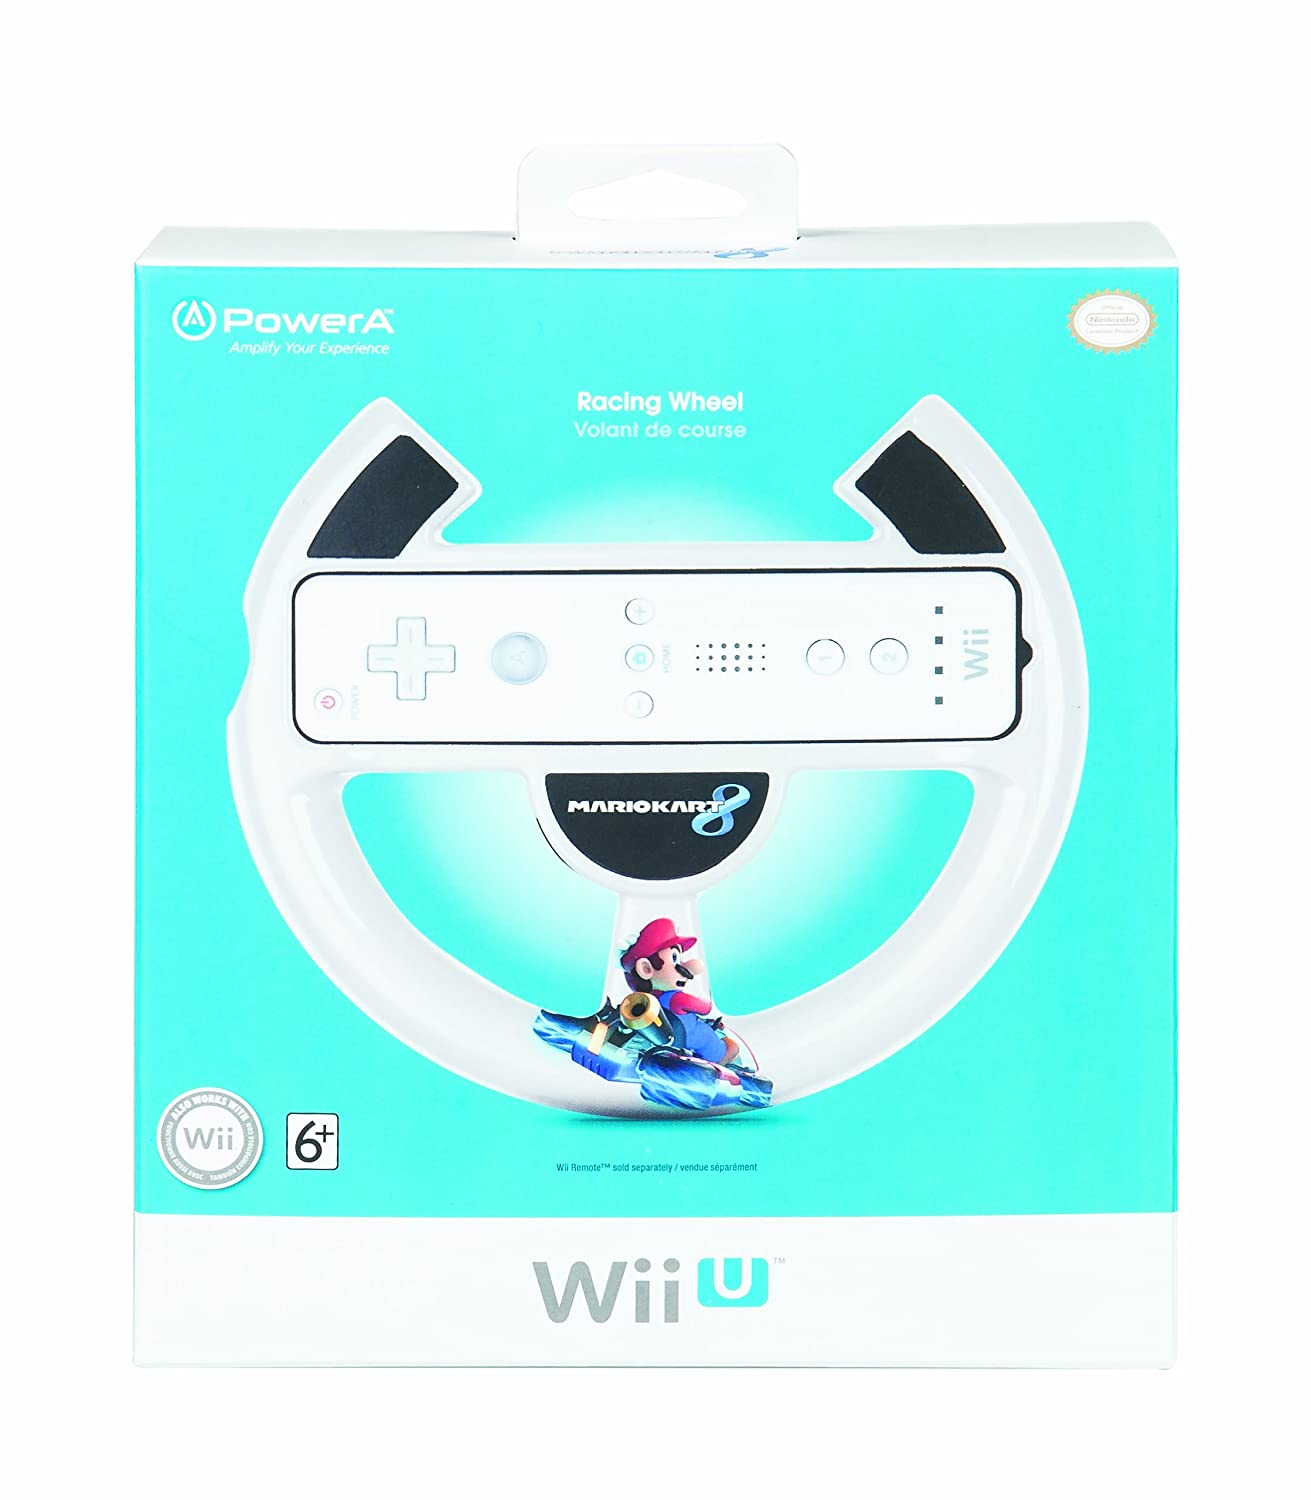 Mario kart 8 for sale - Mario Kart 8 Racing Wheel Nintendo Wii U Amazon Co Uk Pc Video Games